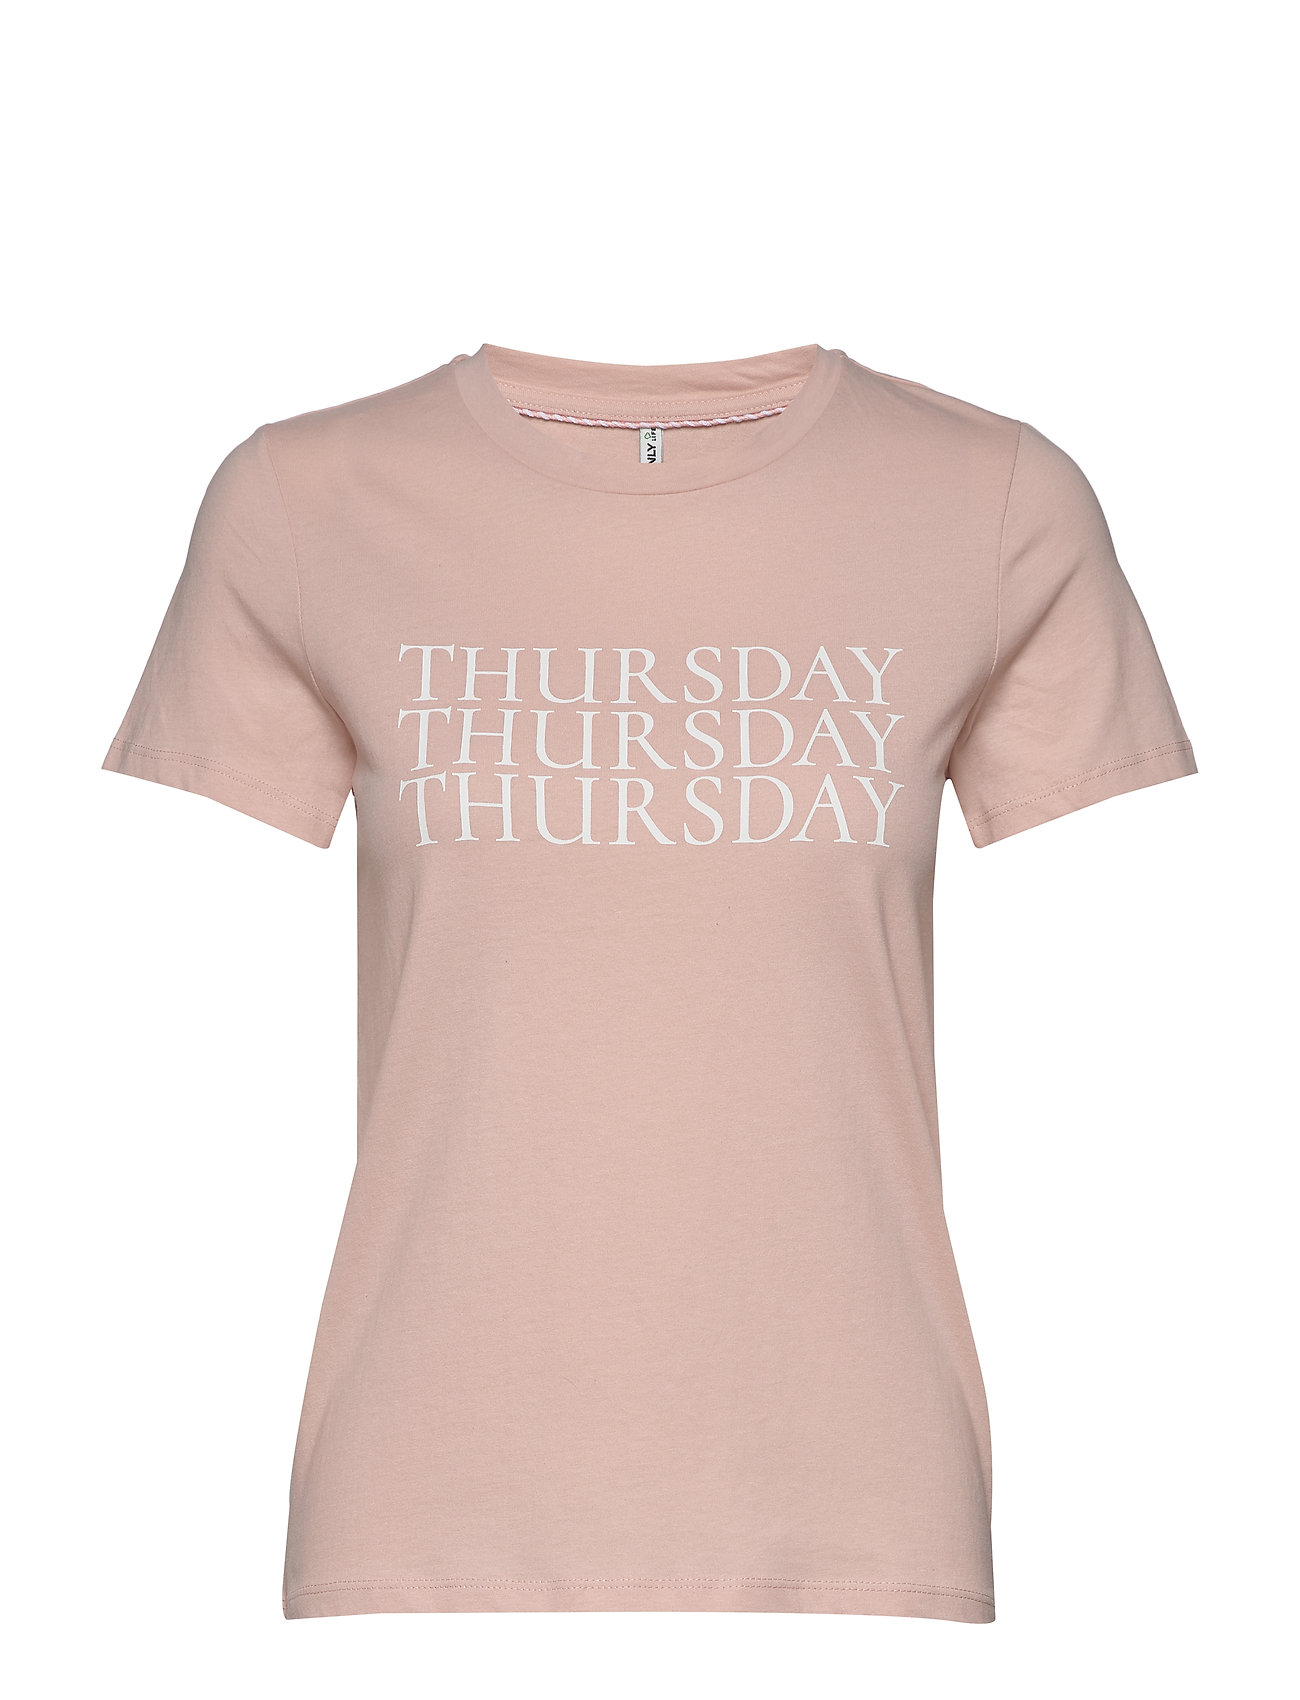 Image of Onlweekday Life Reg S/S Top Box Co Jrs T-shirt Top Lyserød ONLY (3339884299)